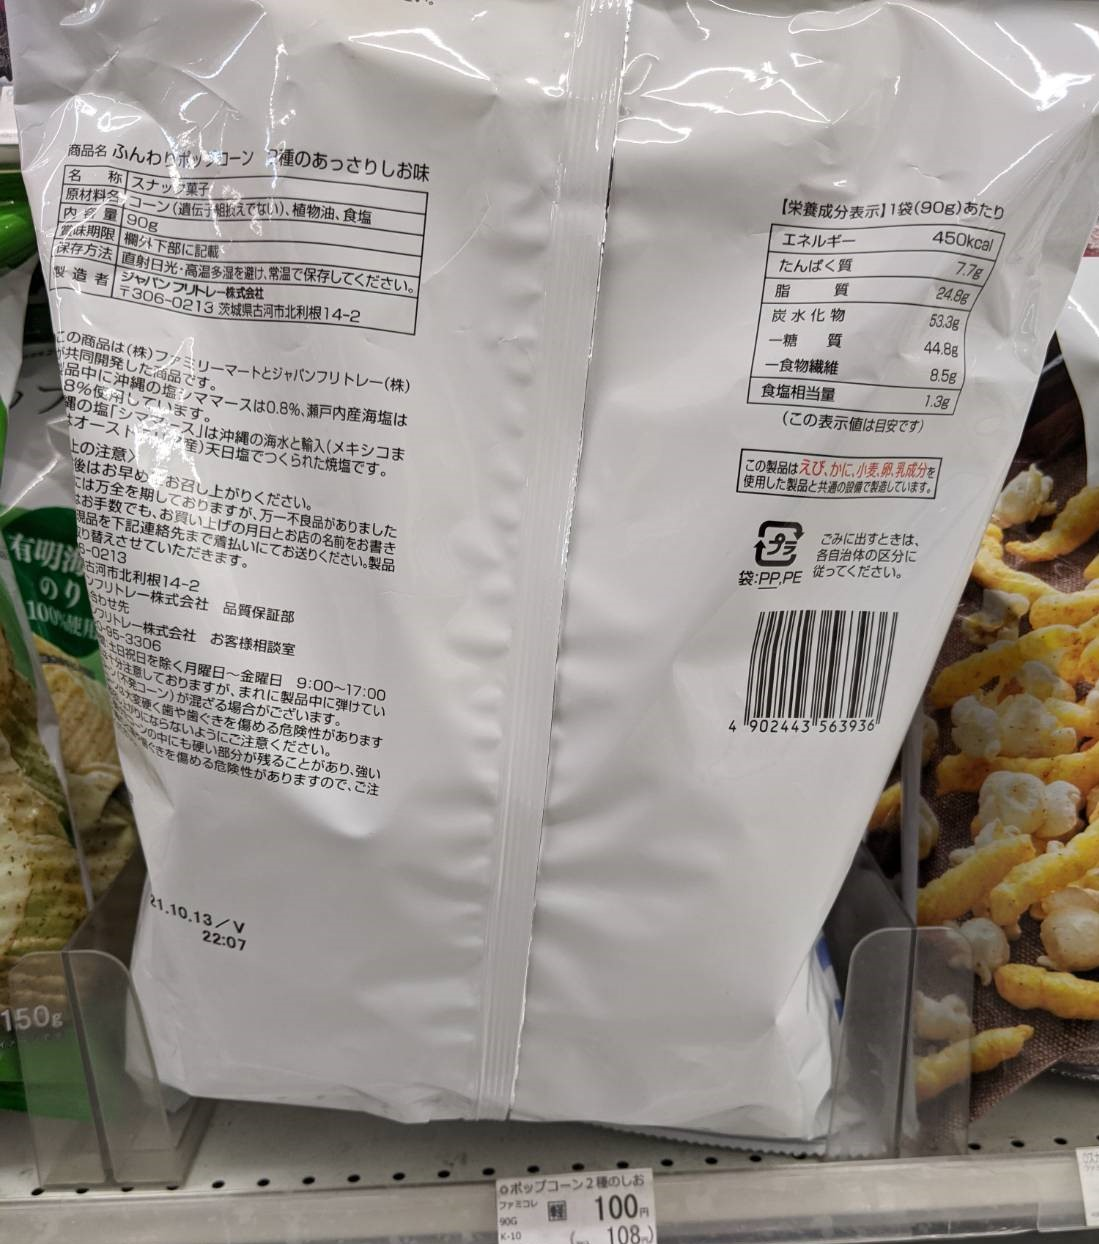 Family Mart Crispy Fluffy Popcorn with Two Kinds of Salt back of package